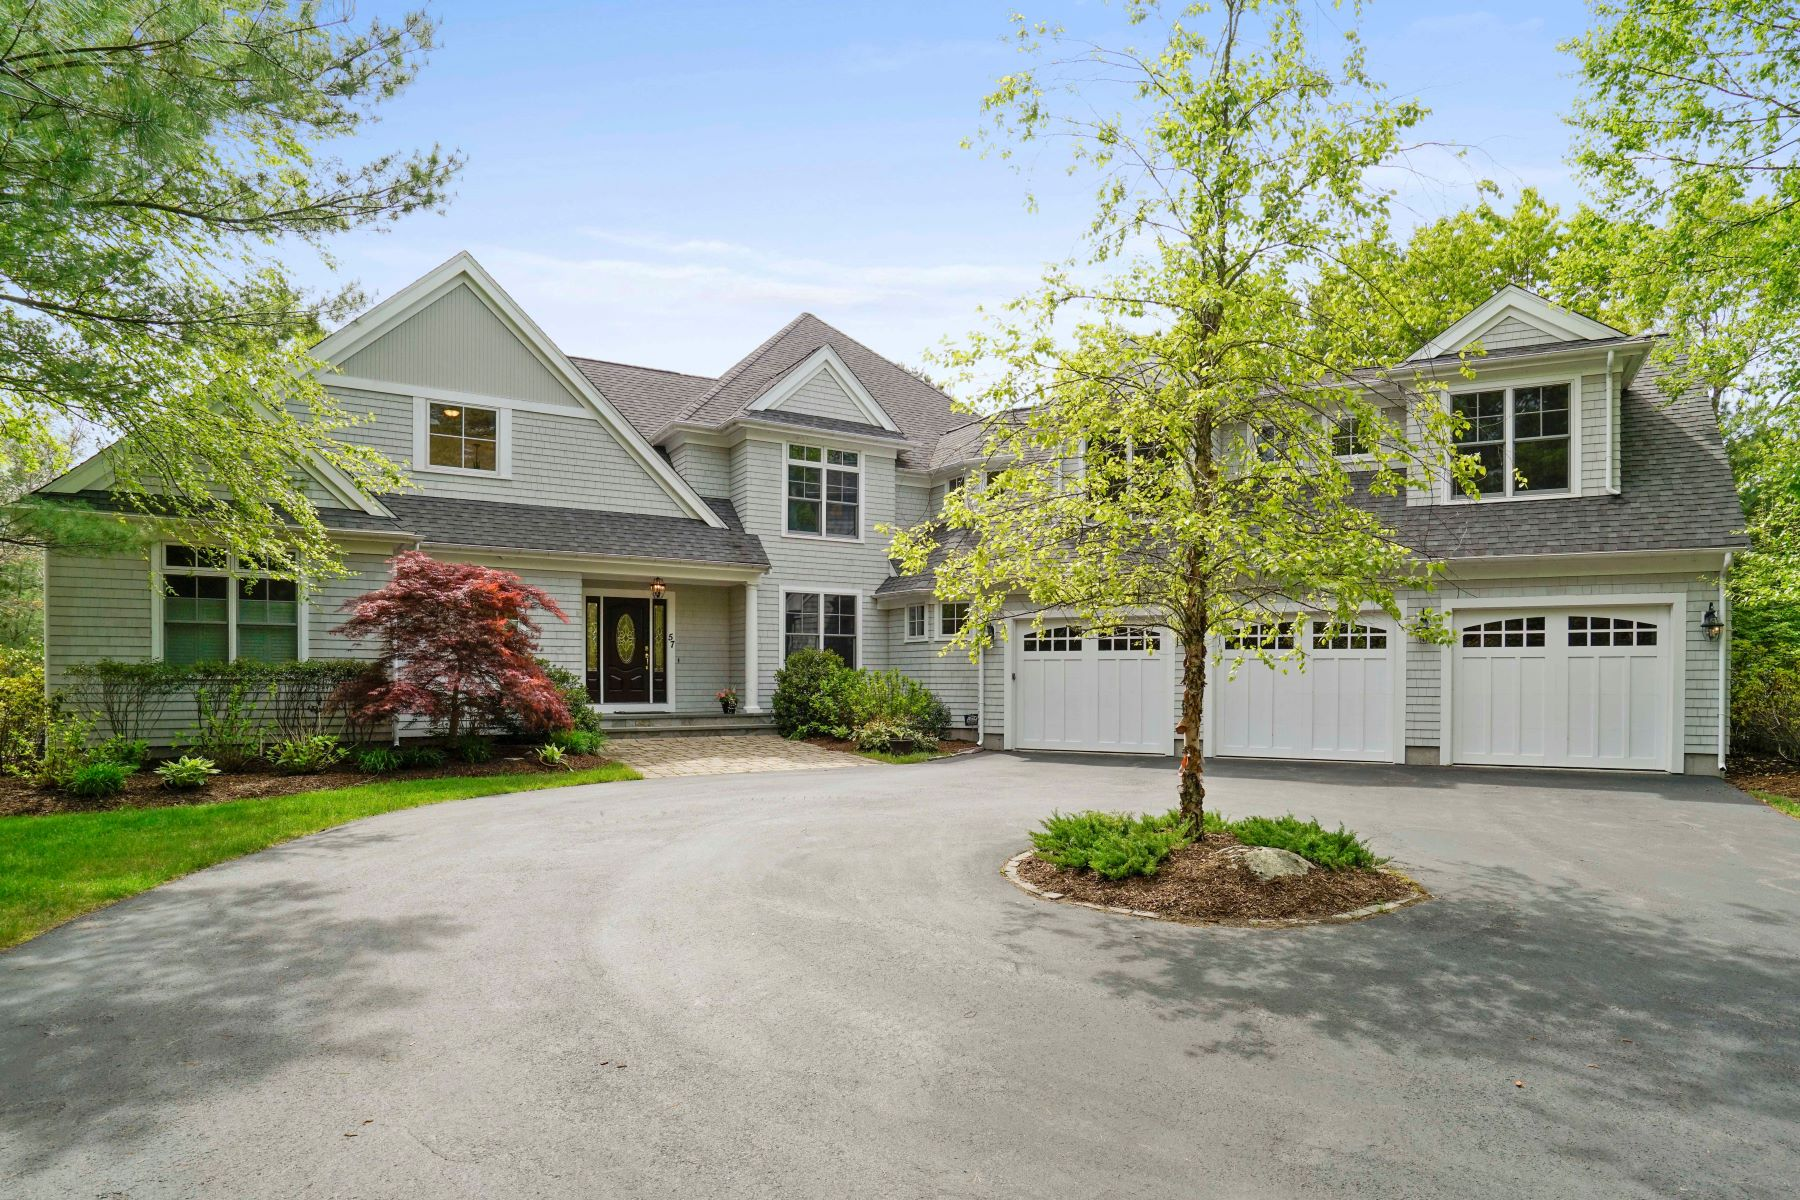 Single Family Home for Active at 57 Ryecroft Plymouth, Massachusetts 02360 United States